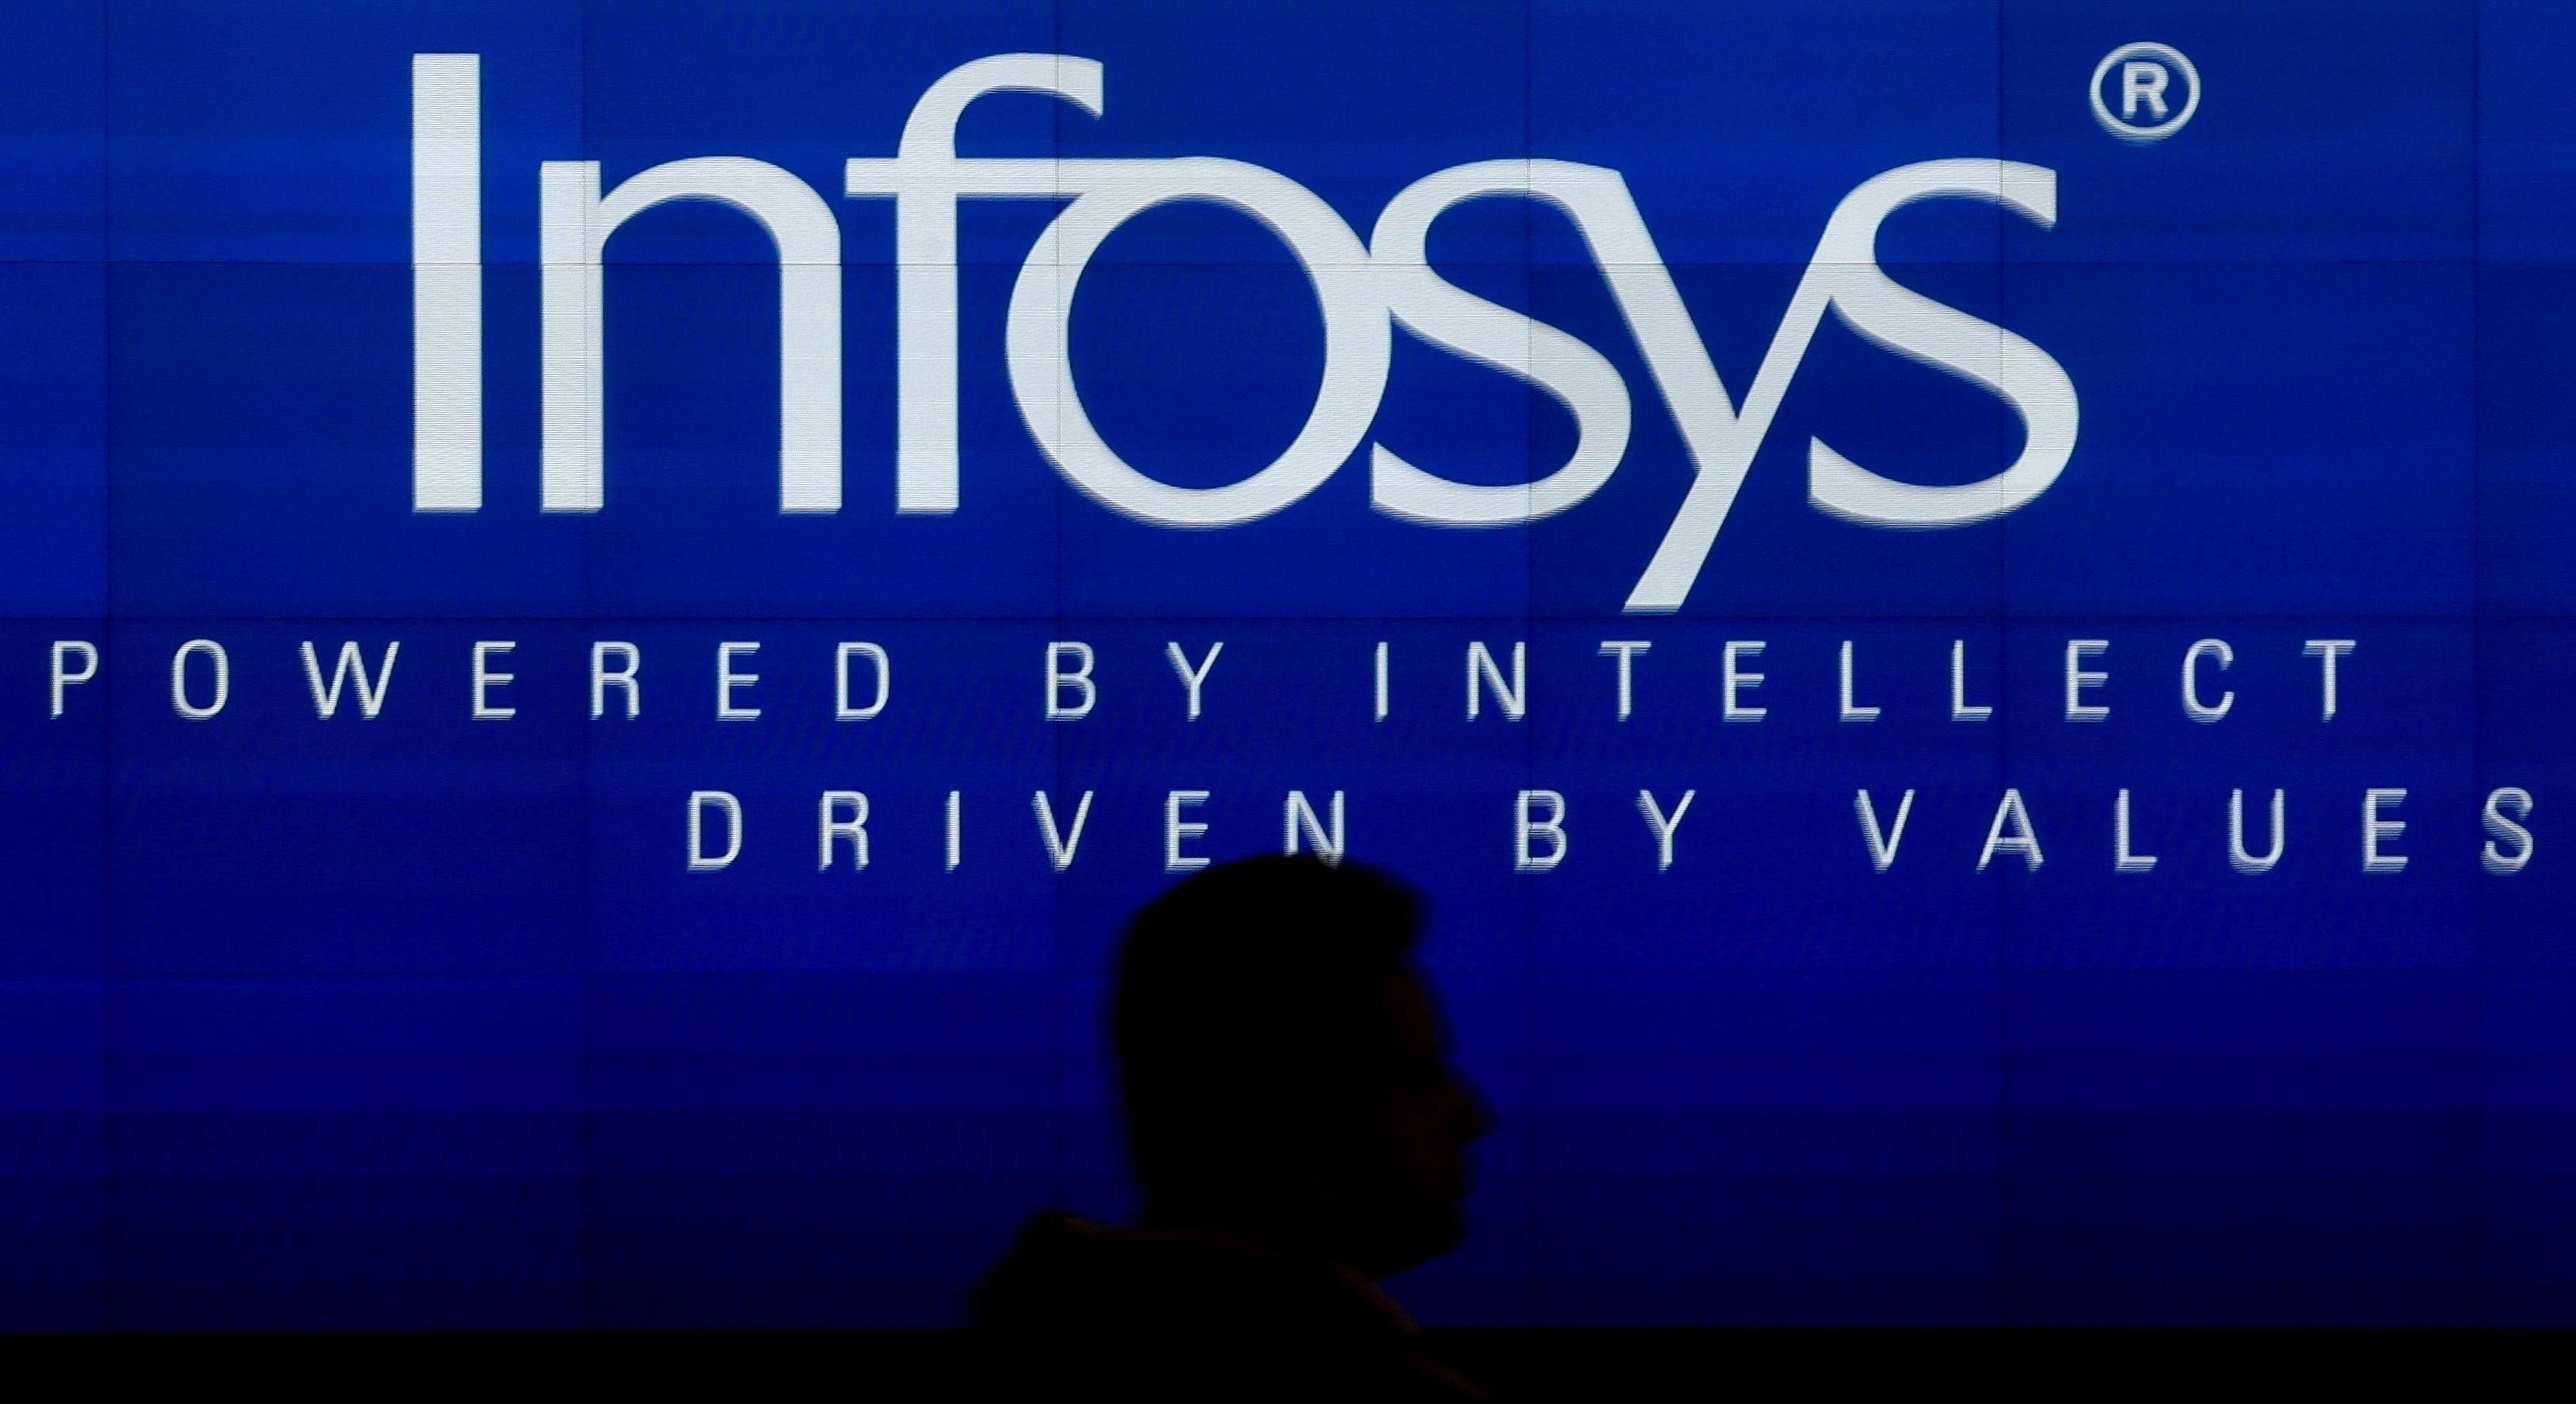 epa06433506 Shillouted Indian software professional walks down in front of Infosys logo at Indian multinational corporation Infosys Limited, during Q3 results at the Infosys headquarters, in Bangalore, India, 12 January 2018. India's second-biggest IT services exporter Infosys Ltd posted a 38.3 per cent jump in third-quarter profit, helped by tax benefits from the firm's deal with US Internal Revenue Service.